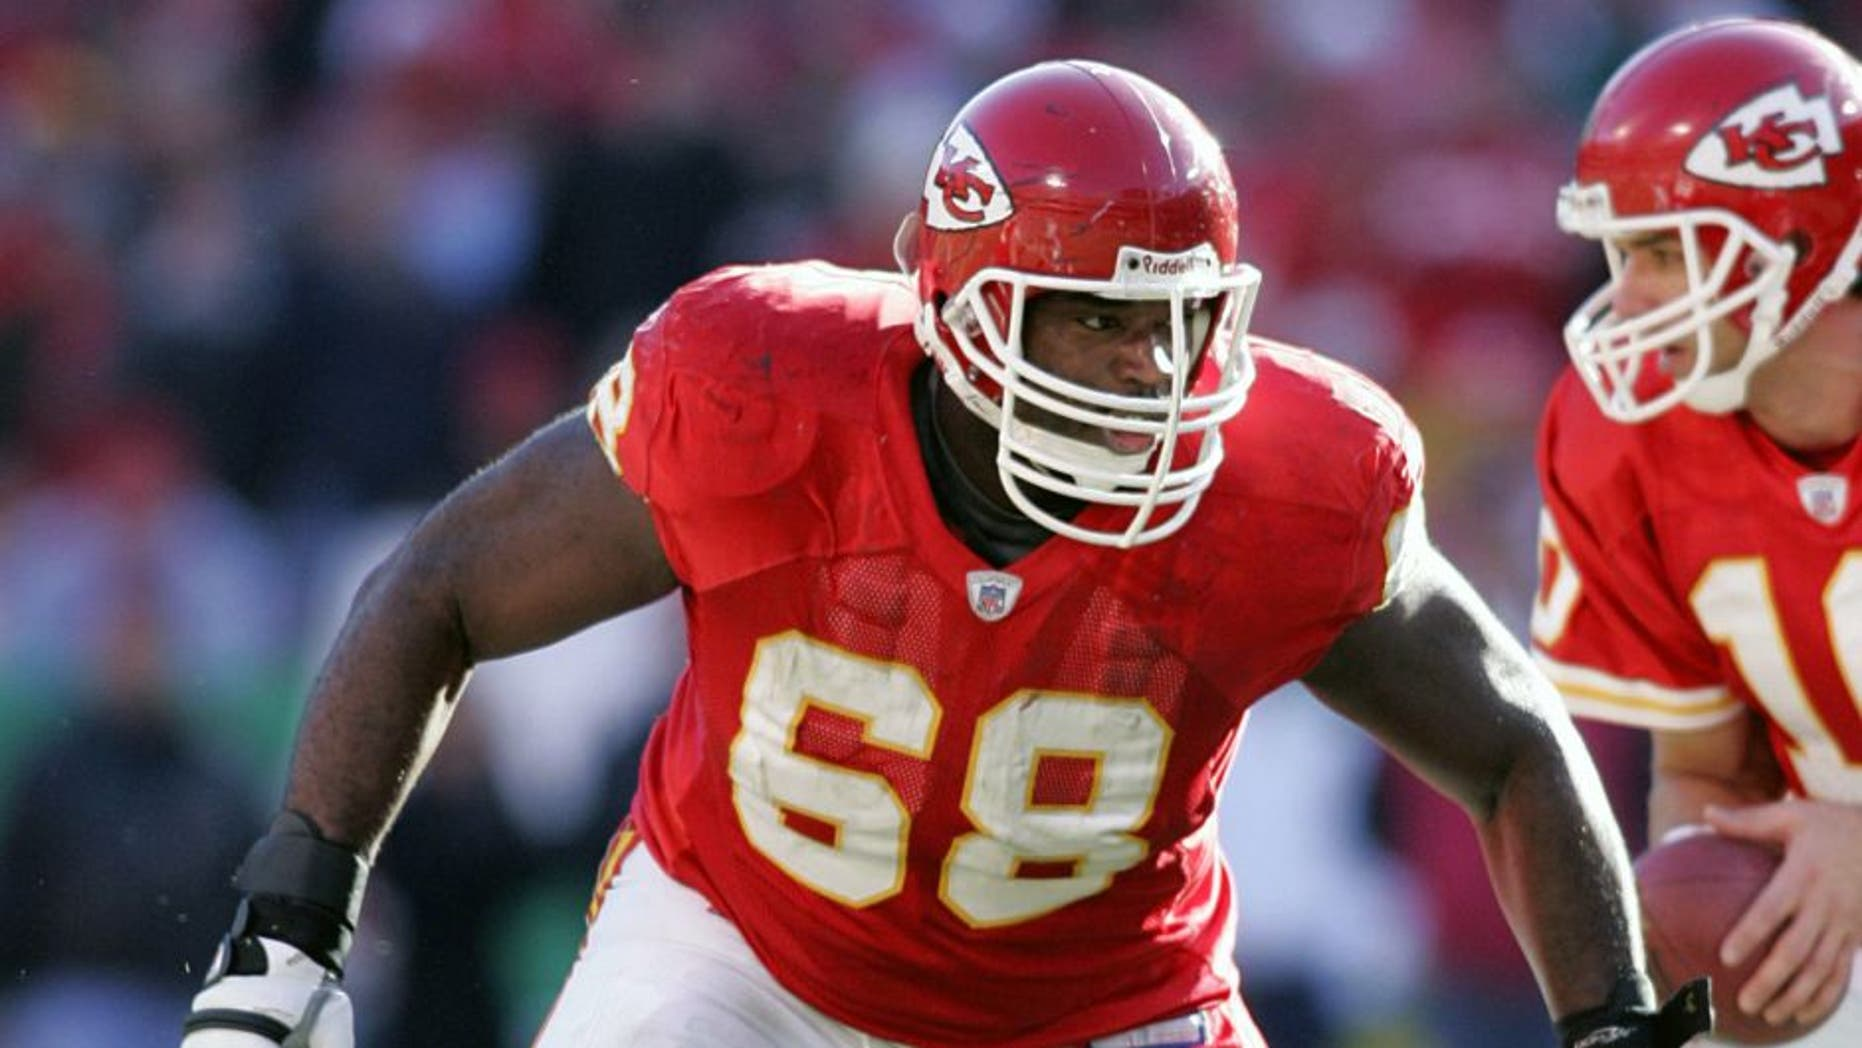 KANSAS CITY, MO - DECEMBER 10: Guard Will Shields #68 of the Kansas City Chiefs gets ready to block in a game against the Baltimore Ravens at Arrowhead Stadium on December 10, 2006 in Kansas City, Missouri. (Photo by Tim Umphrey/Getty Images)